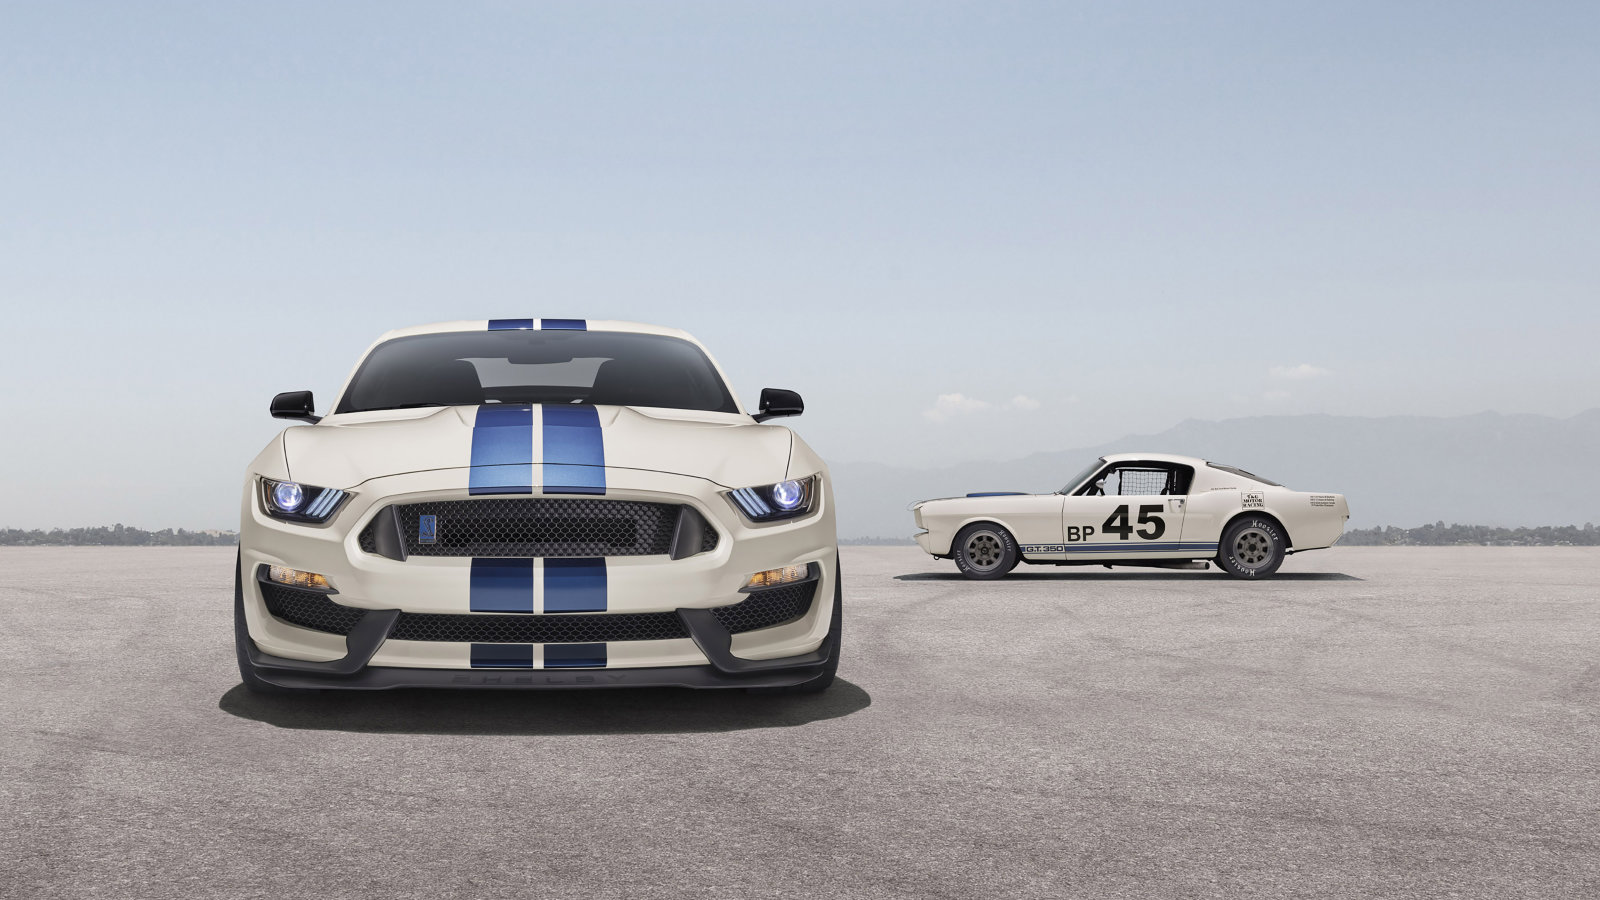 2020 Ford Mustang Shelby GT350 and GT350R Heritage Edition model 1600x900